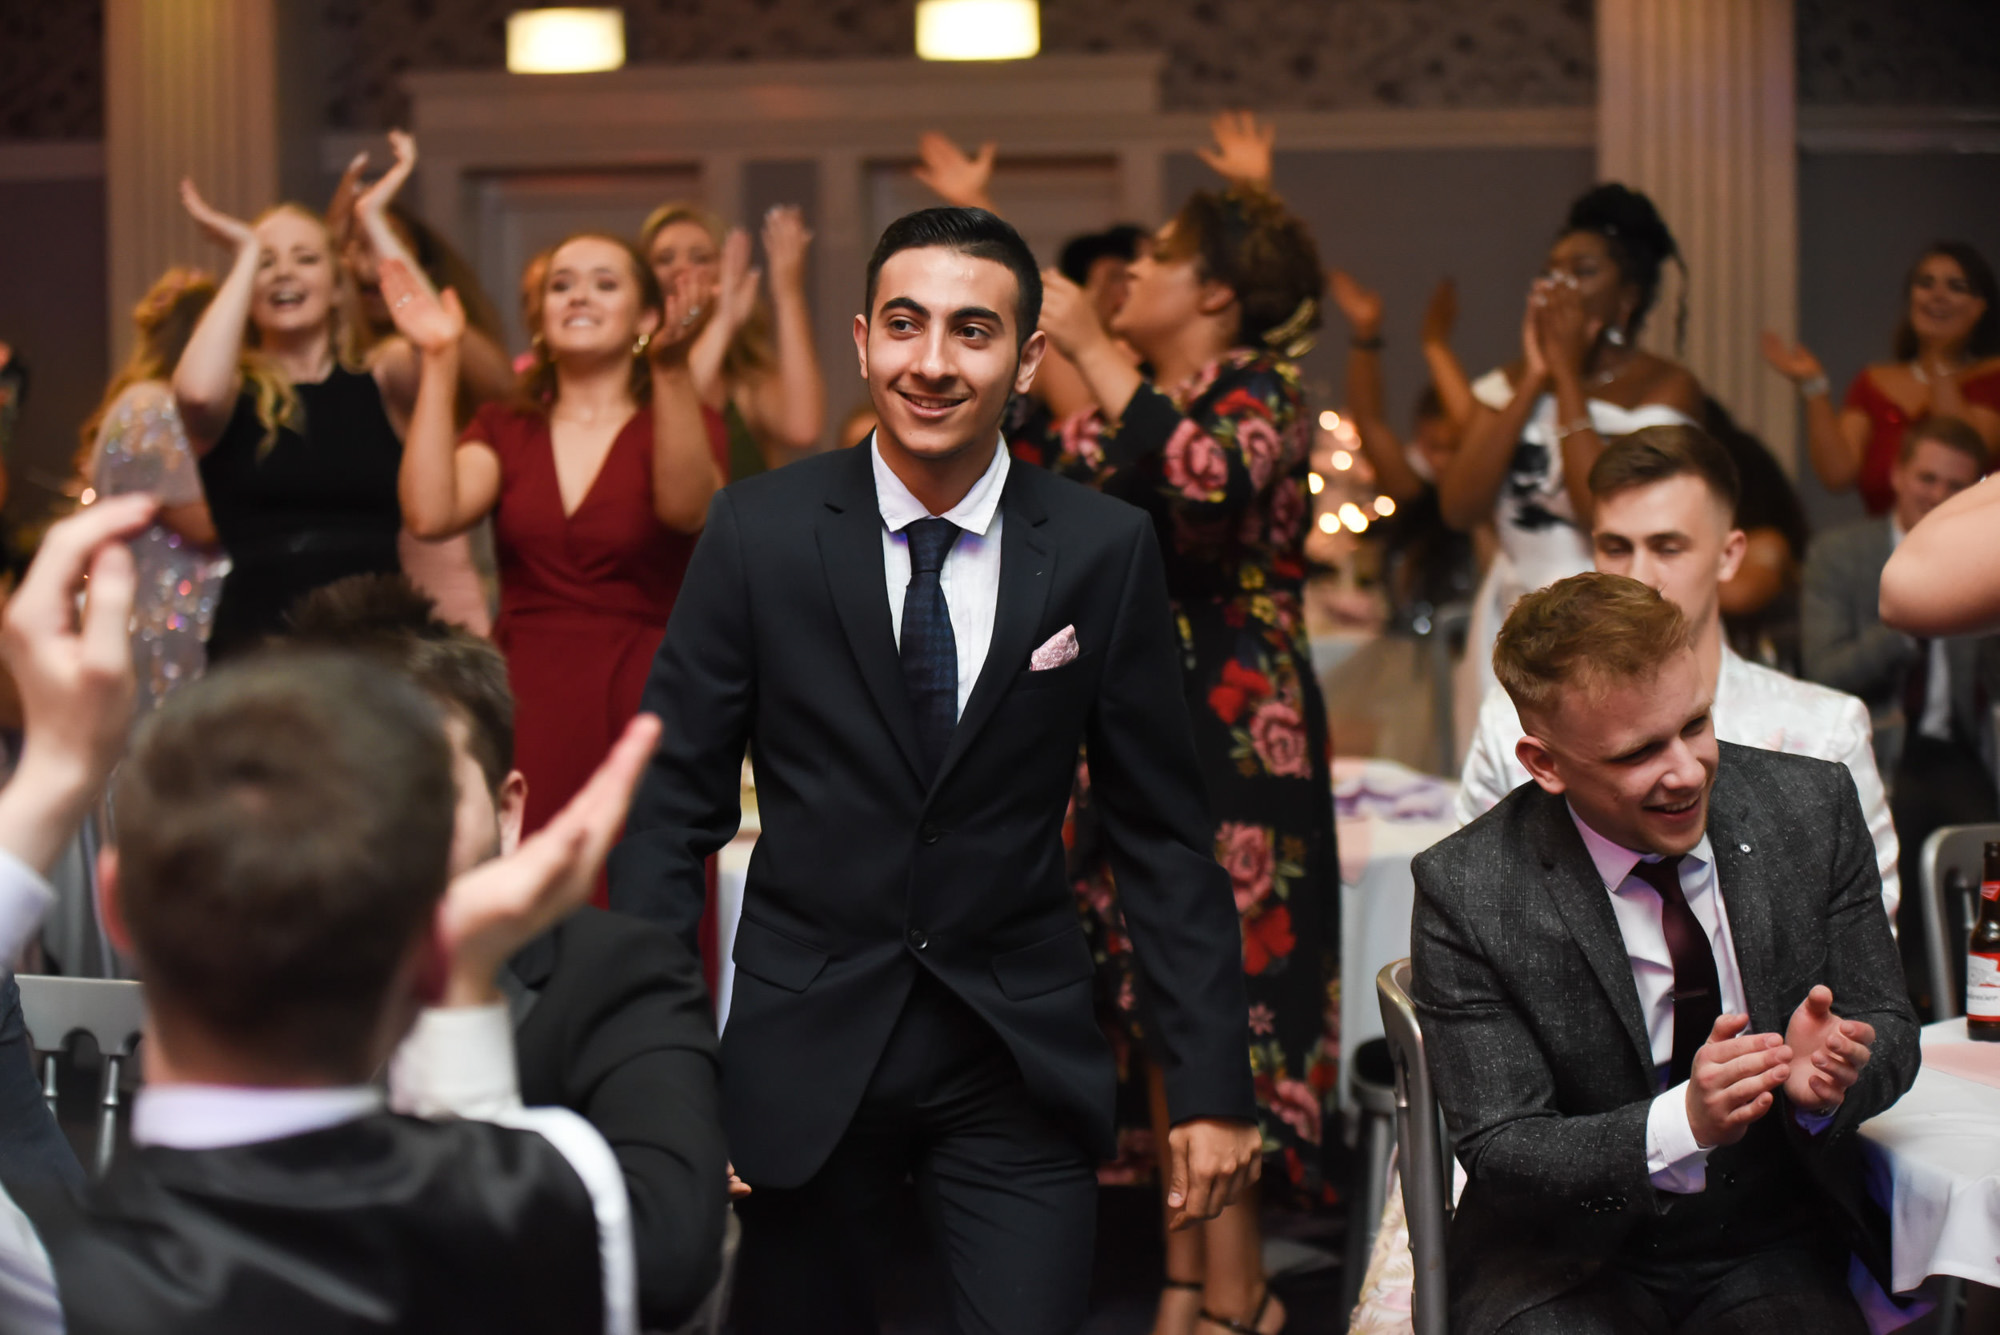 UCLAN_MT_BALL_2019_389.jpg